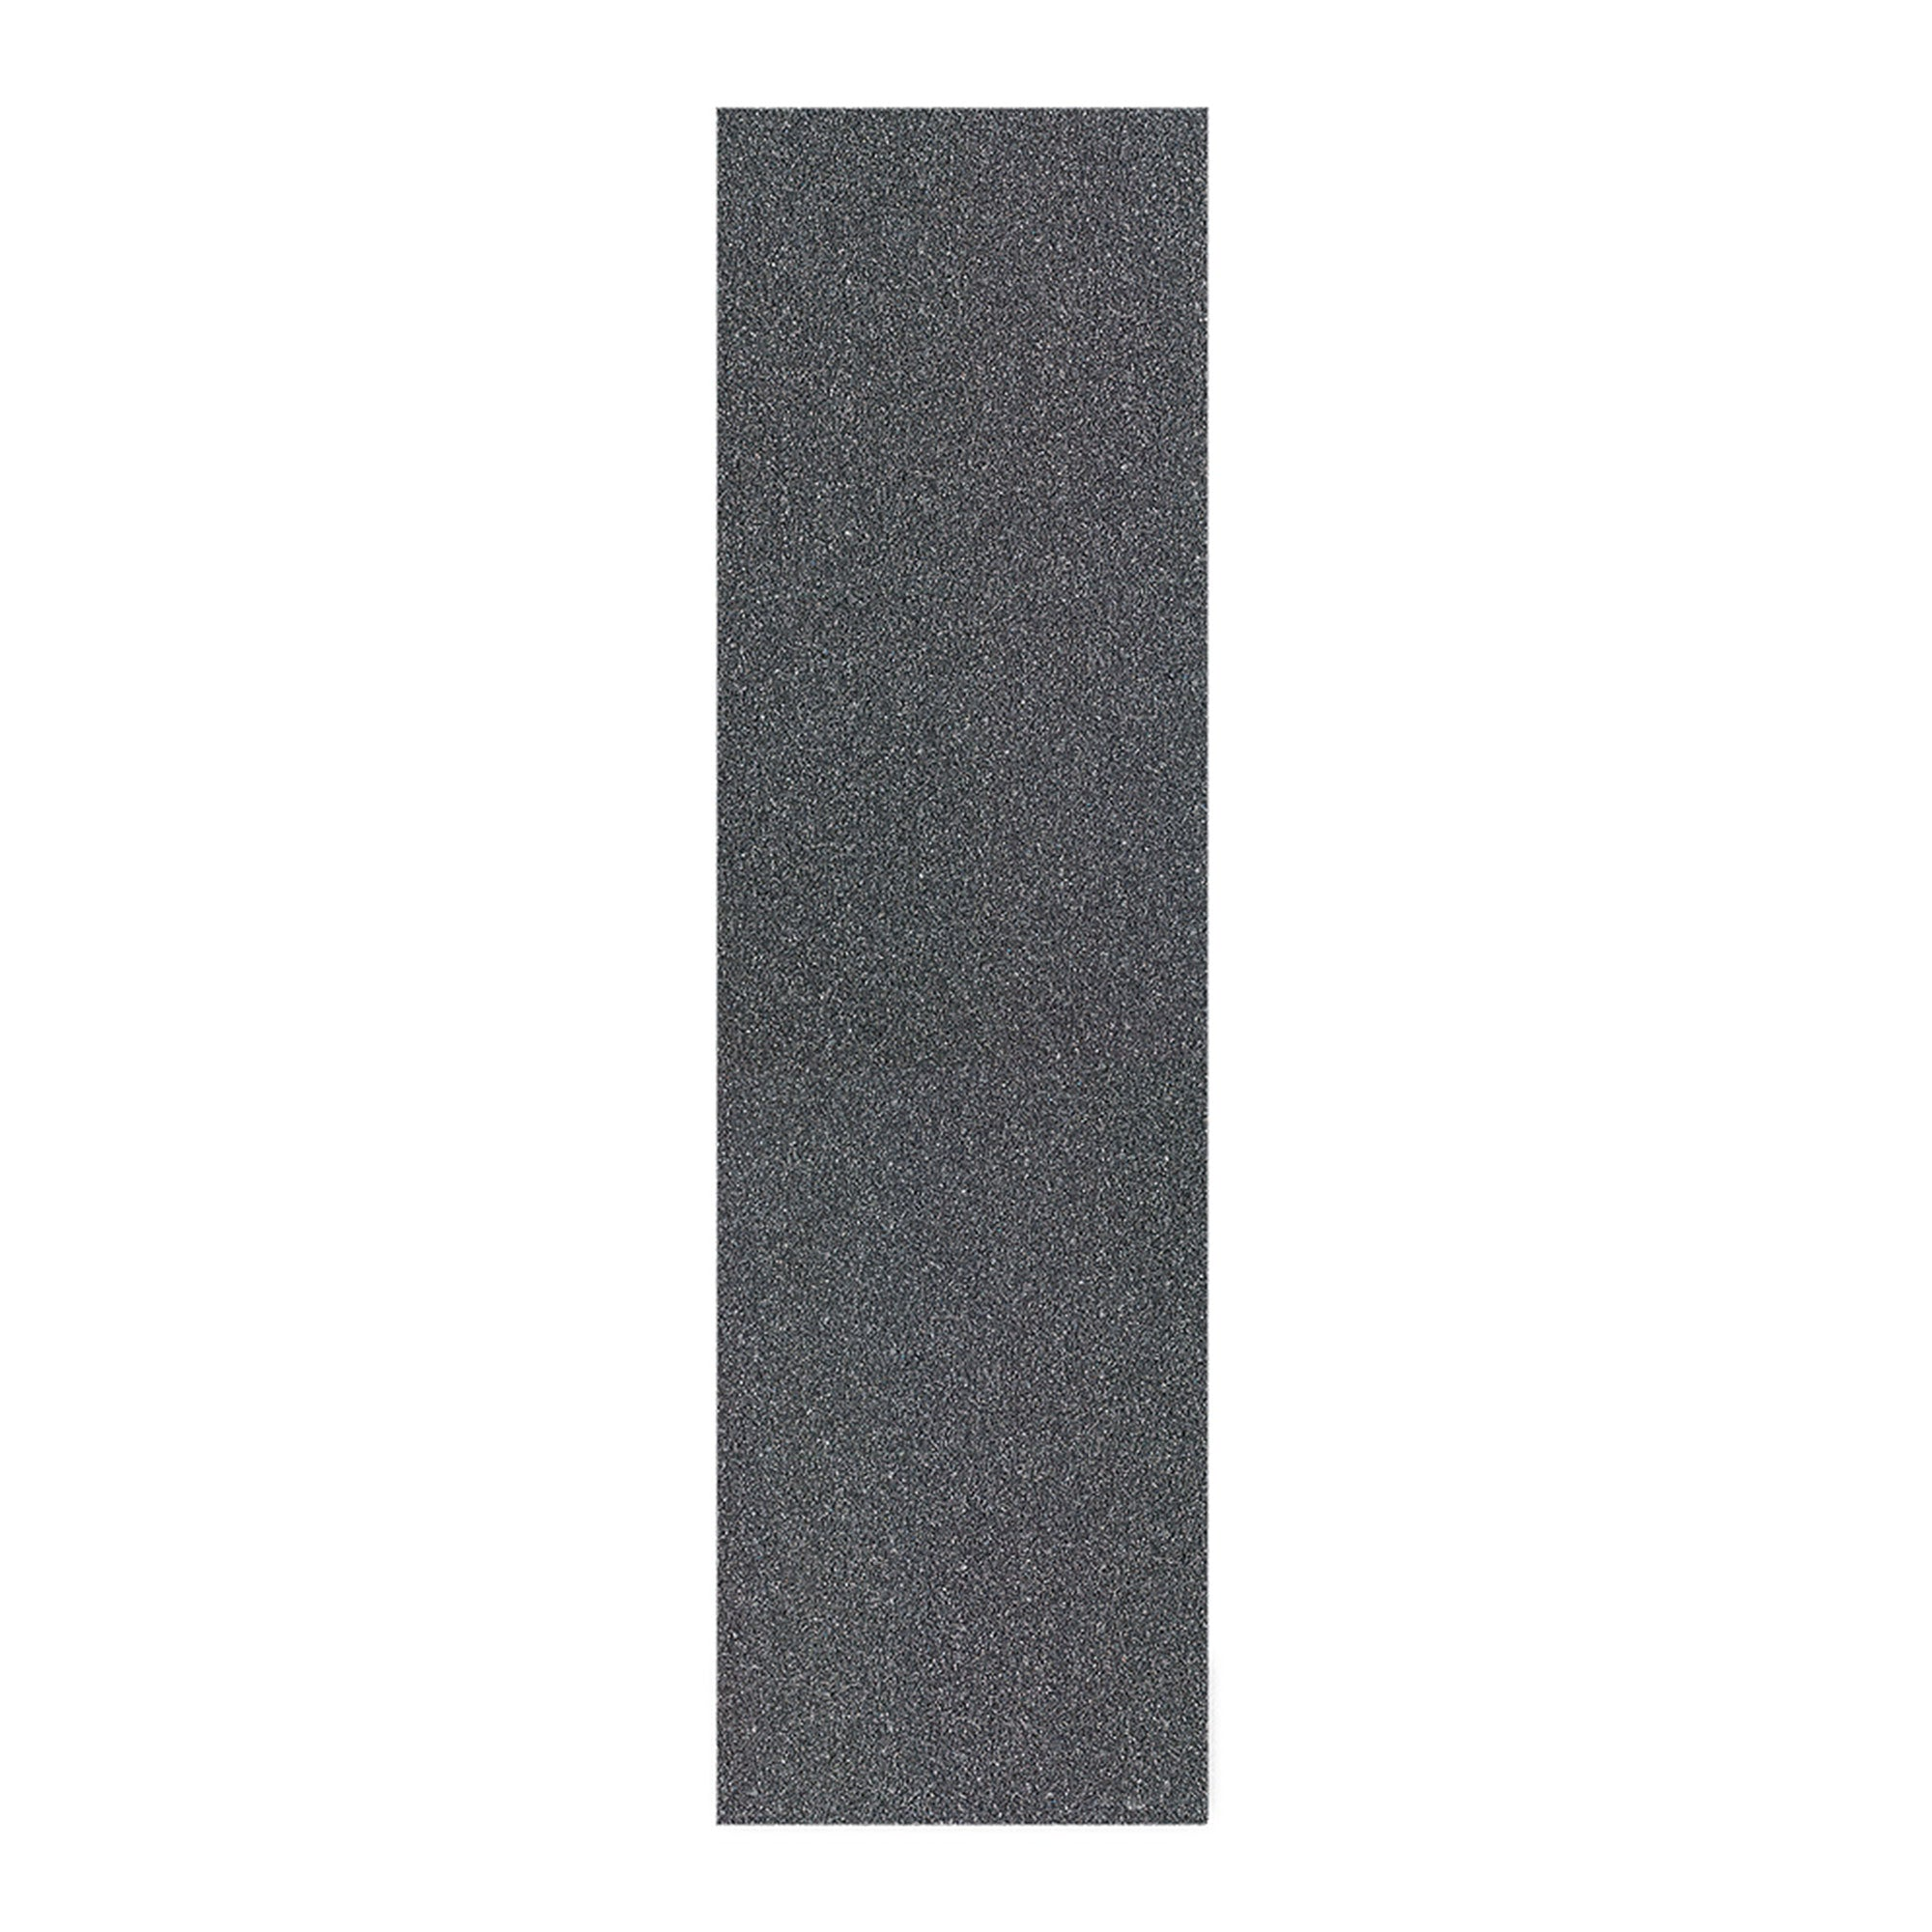 Mob Griptape Product Photo #1